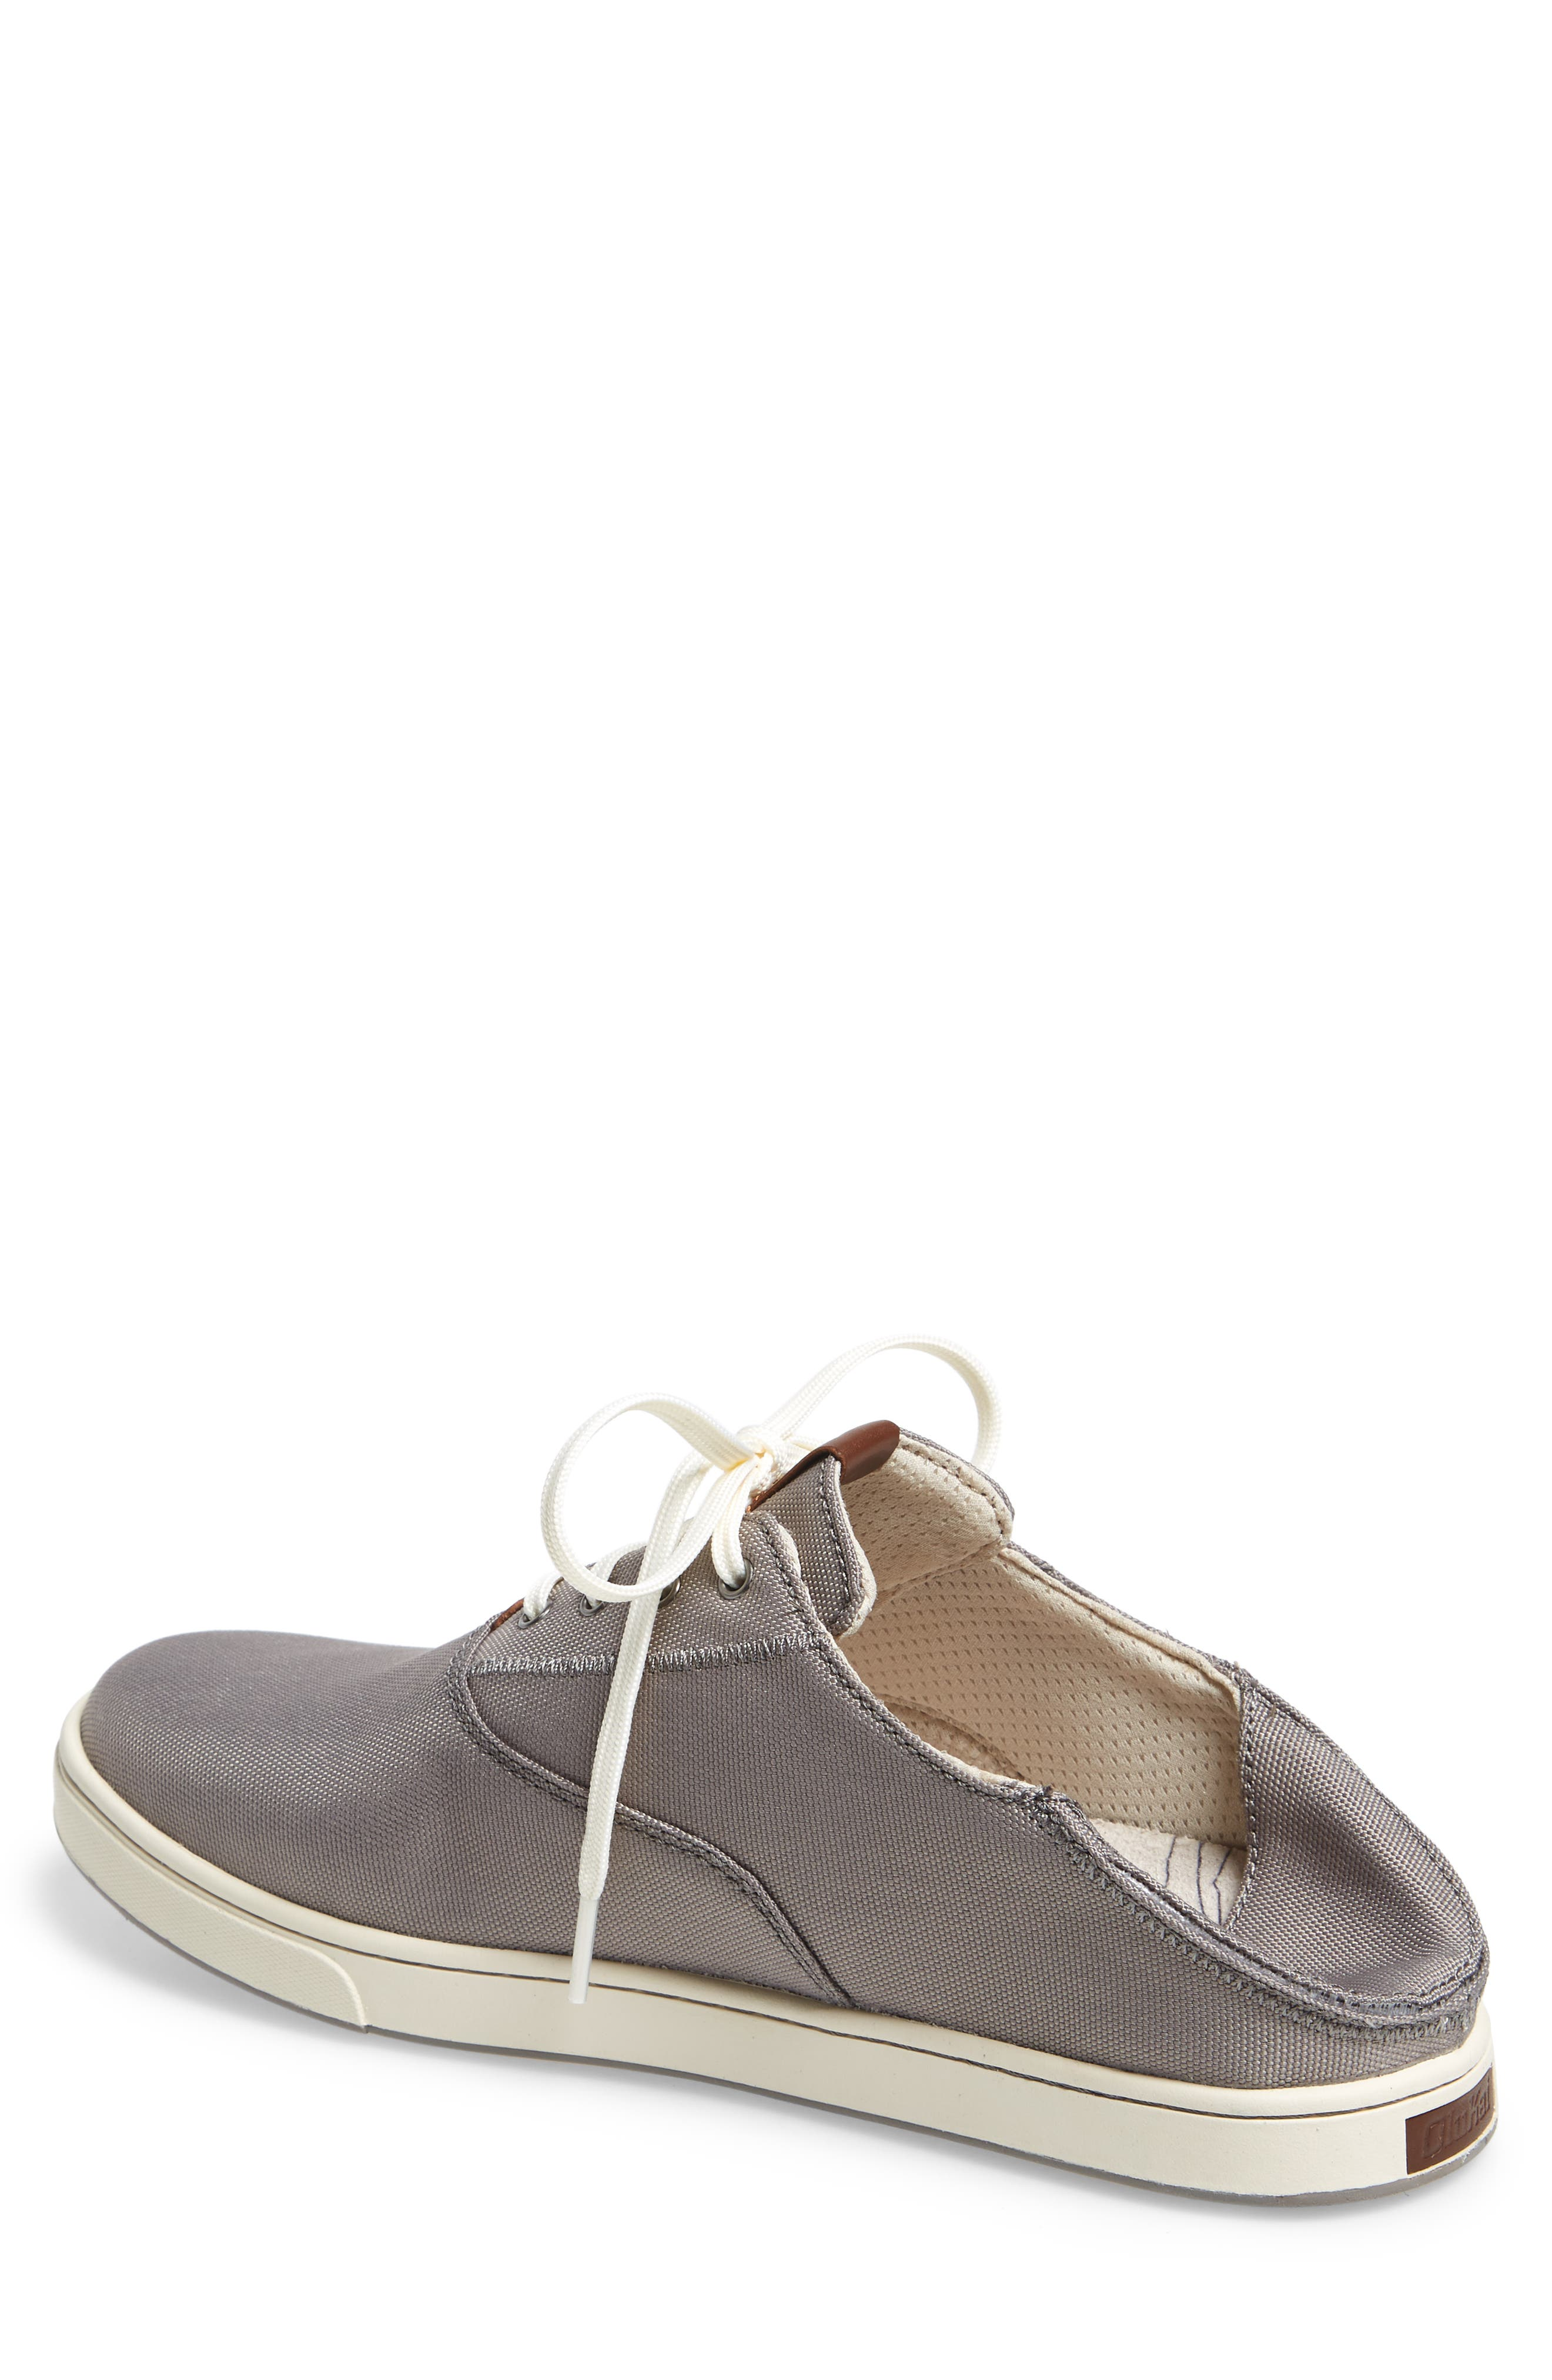 Kahu Collapsible Lace-Up Sneaker,                             Alternate thumbnail 3, color,                             055